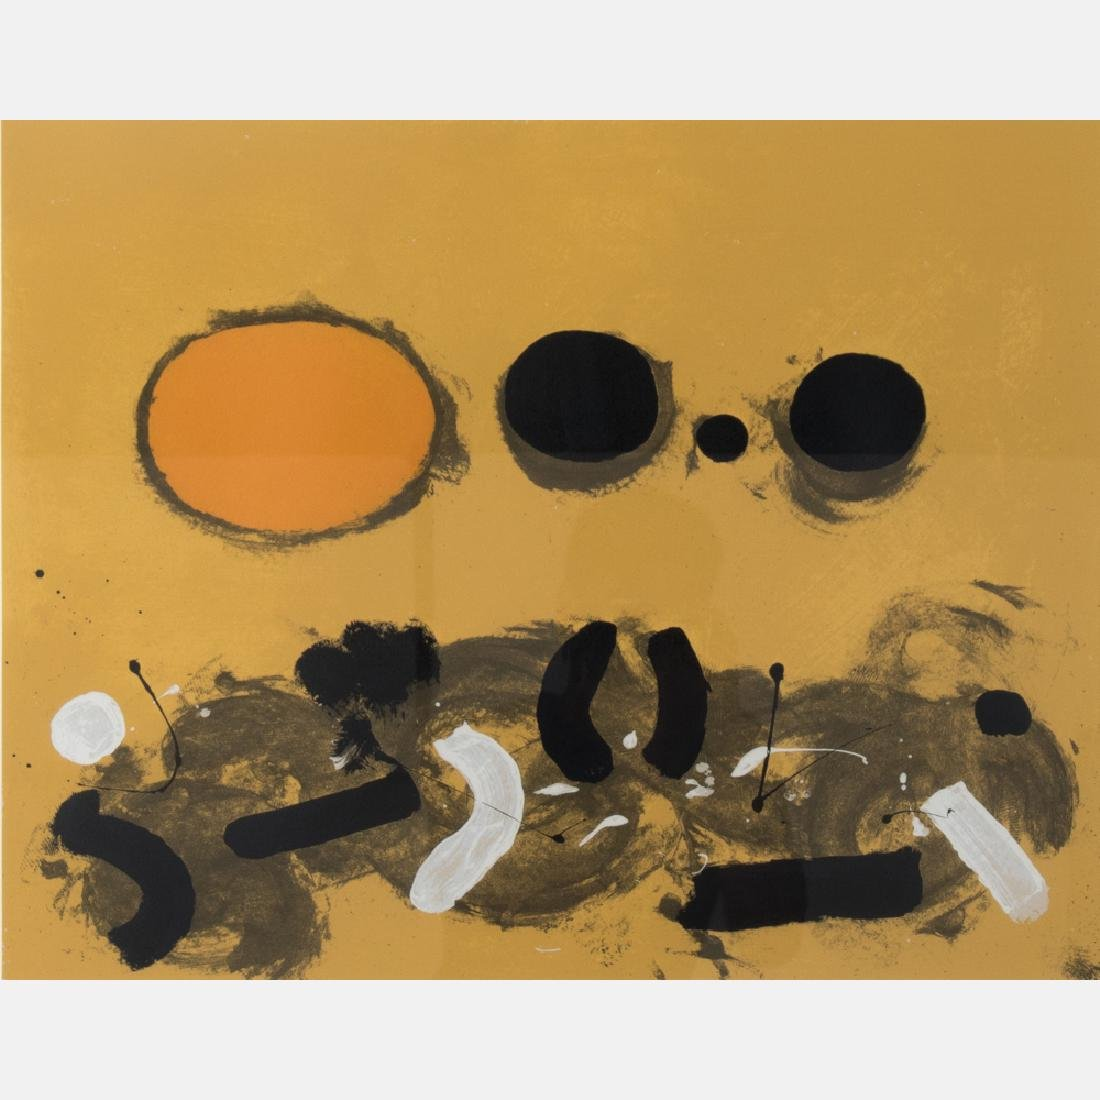 Adolph Gottlieb (1903-1974) Orange Oval, 1972,